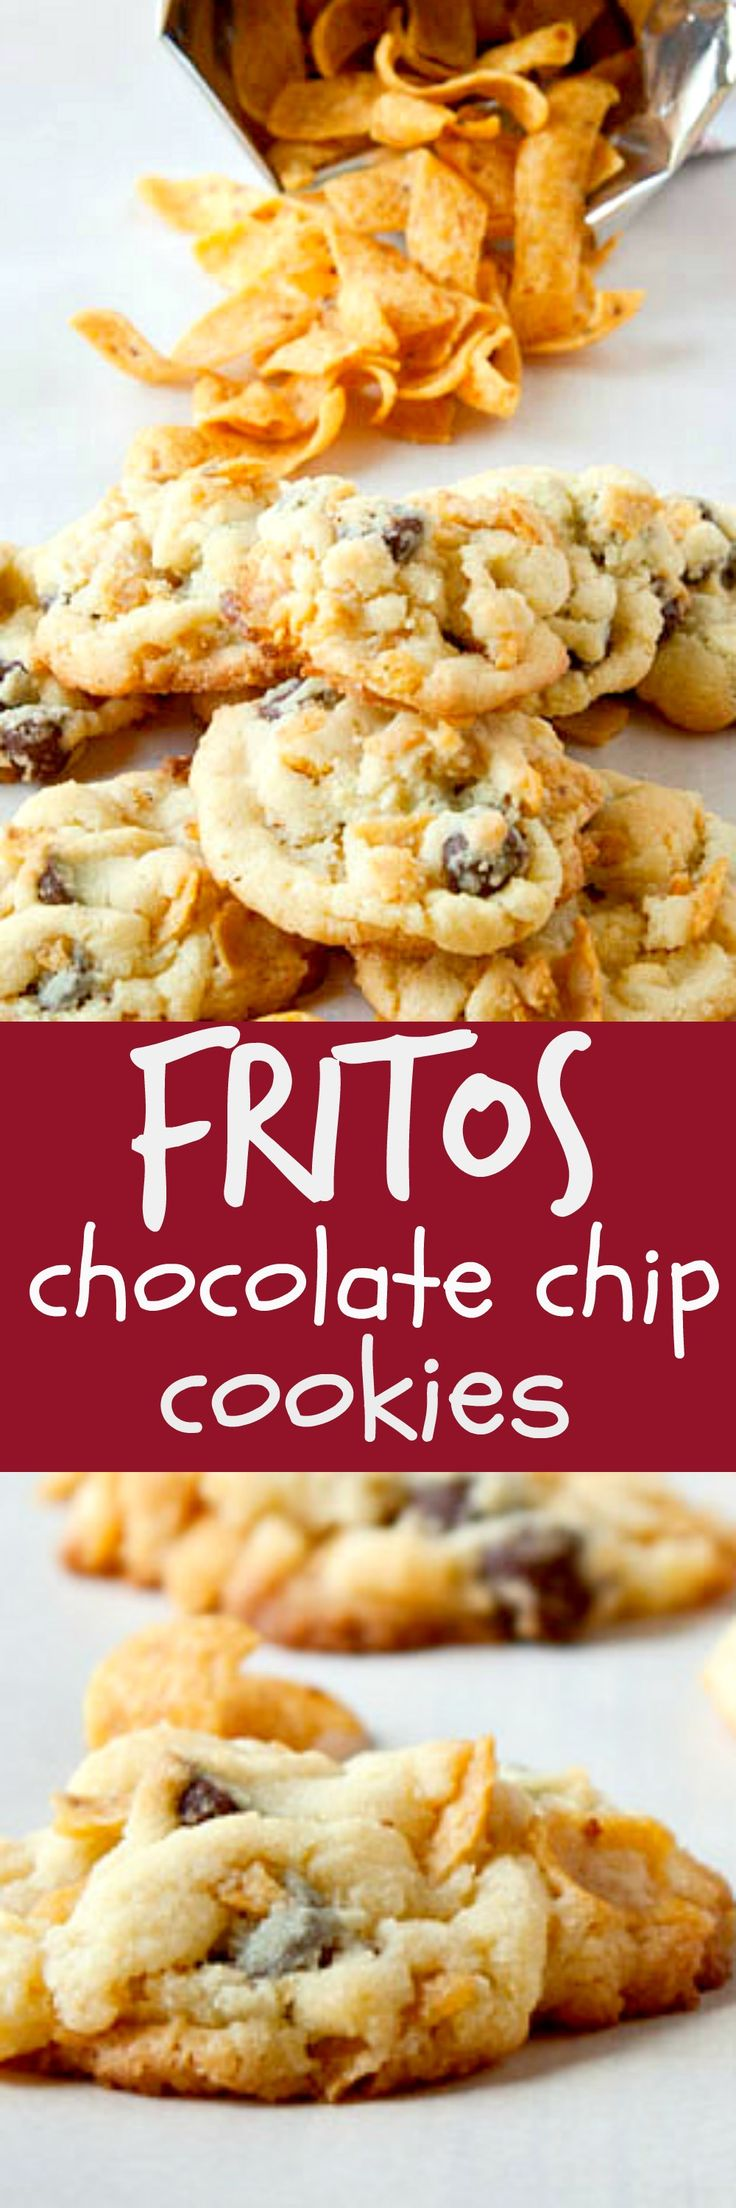 When you add fritos chips to chocolate chip cookies, it tastes like crunchy, caramel bits! Try it!